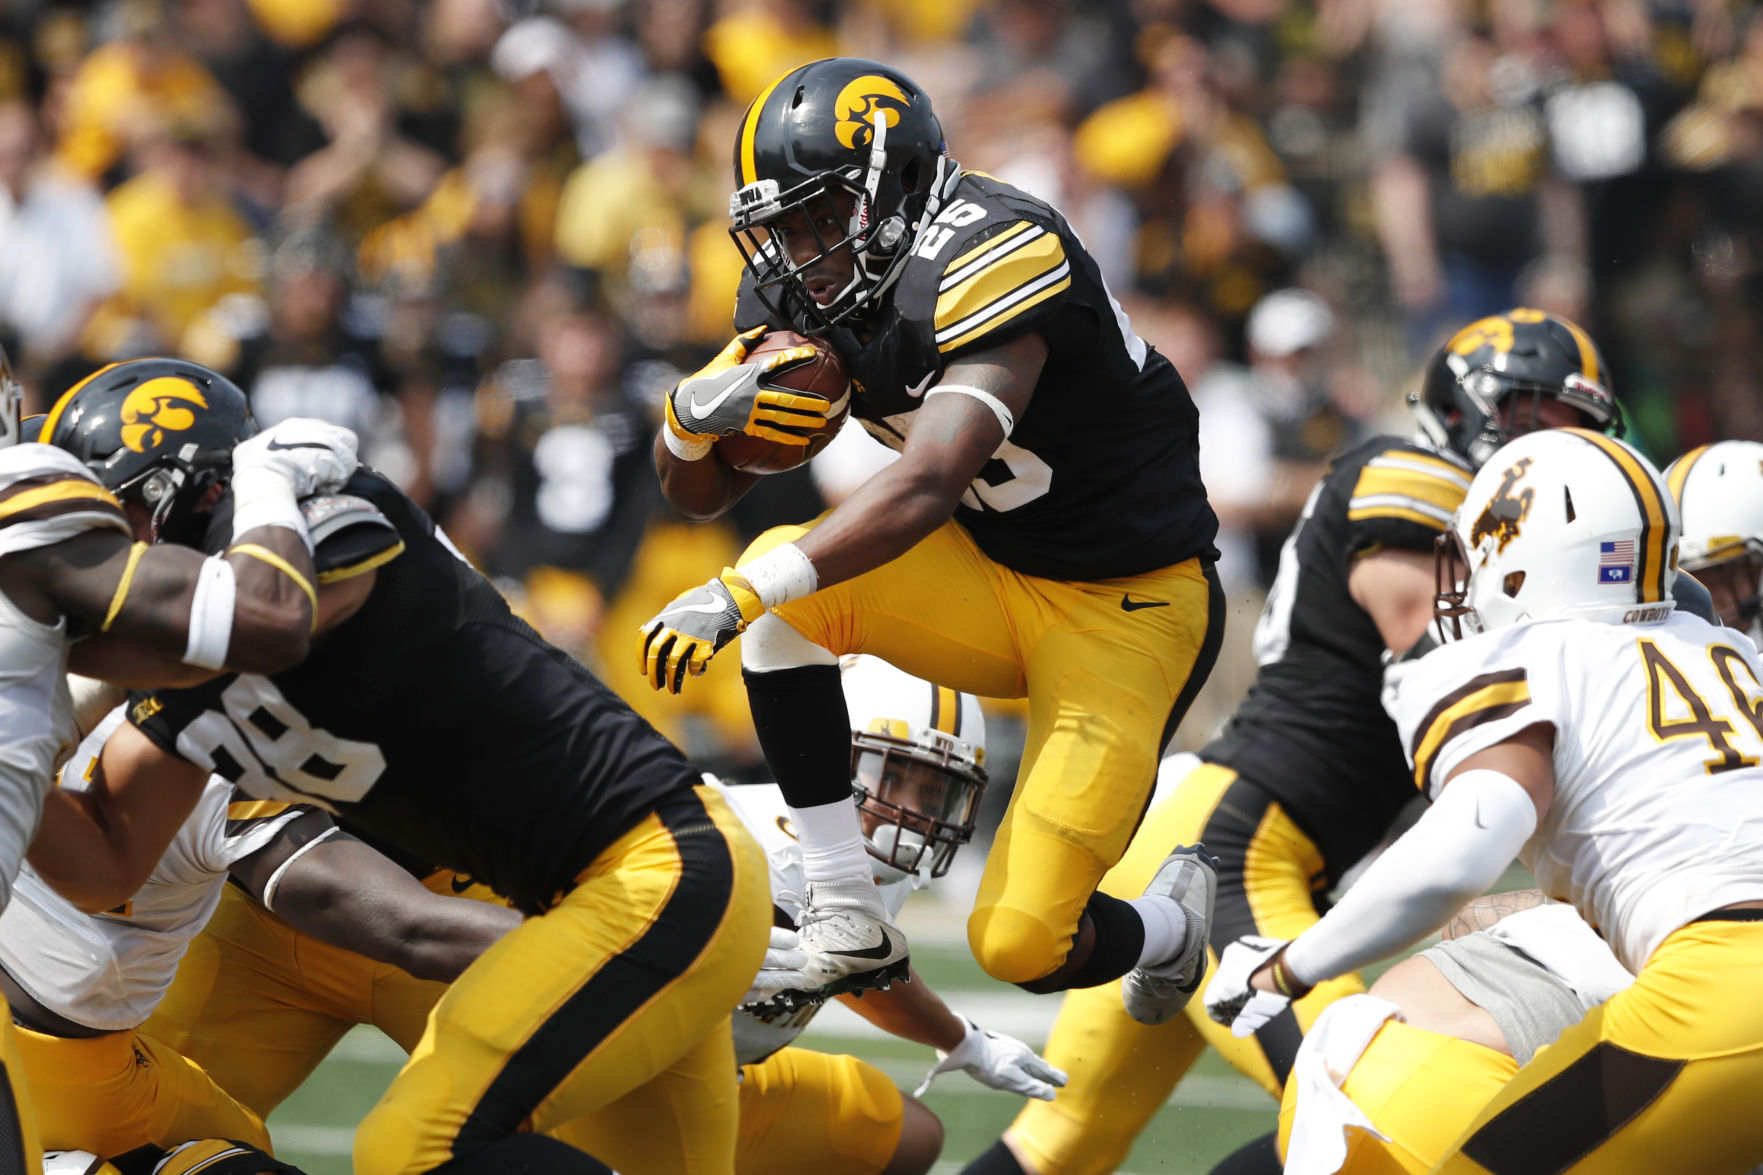 Sluggish offense, missed opportunities cost Wyoming in 24-3 loss at Iowa